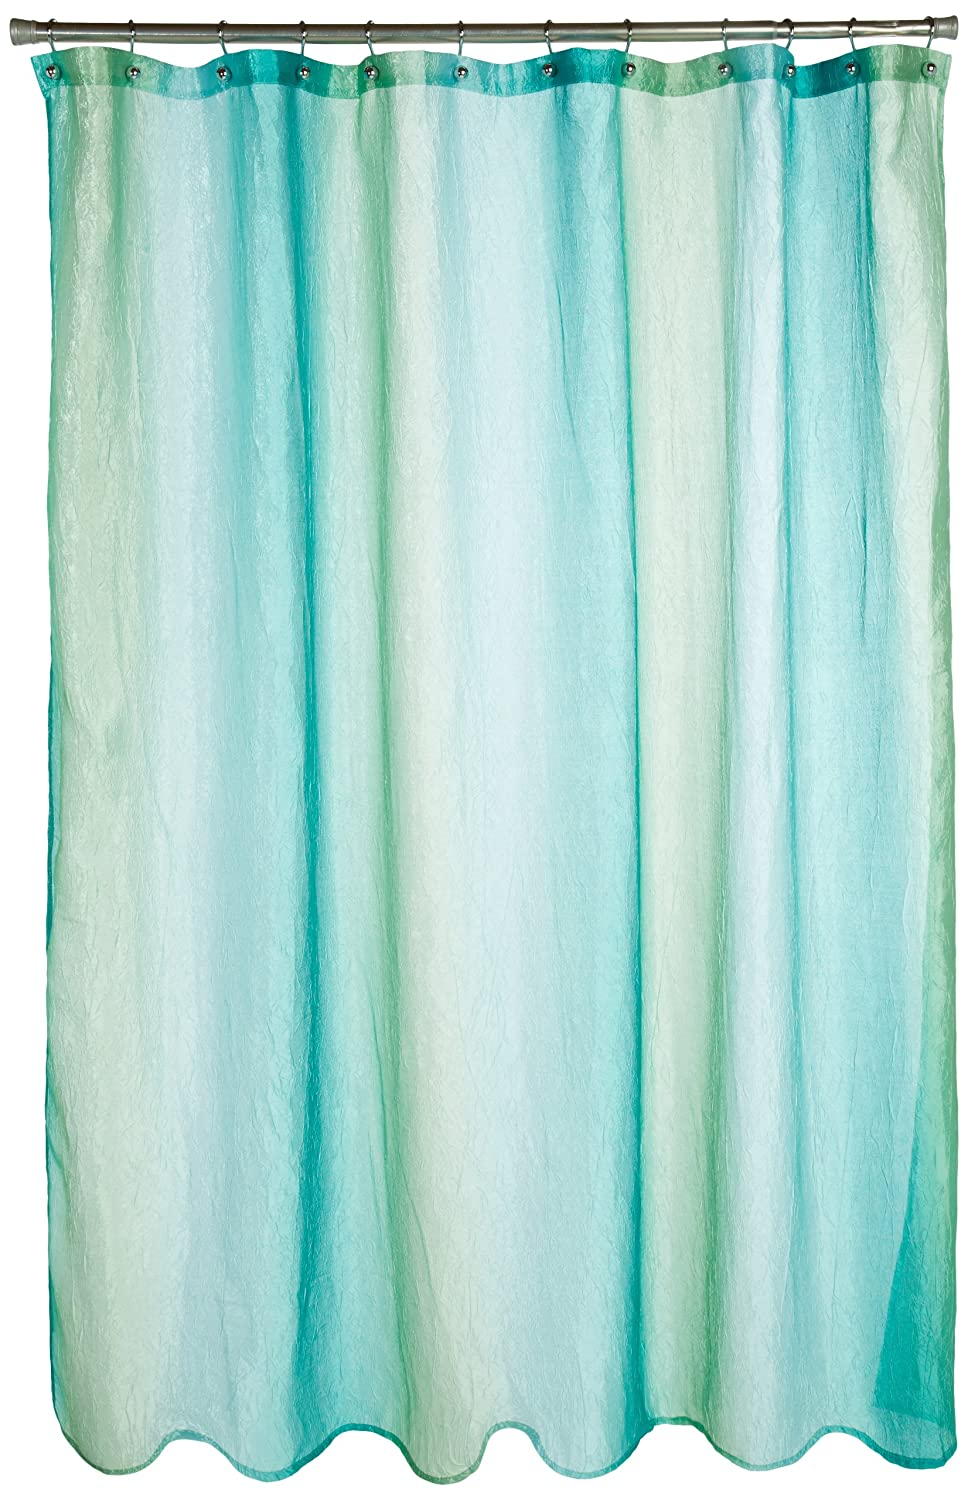 Teal And Green Shower Curtain Chocolate and Teal Shower C